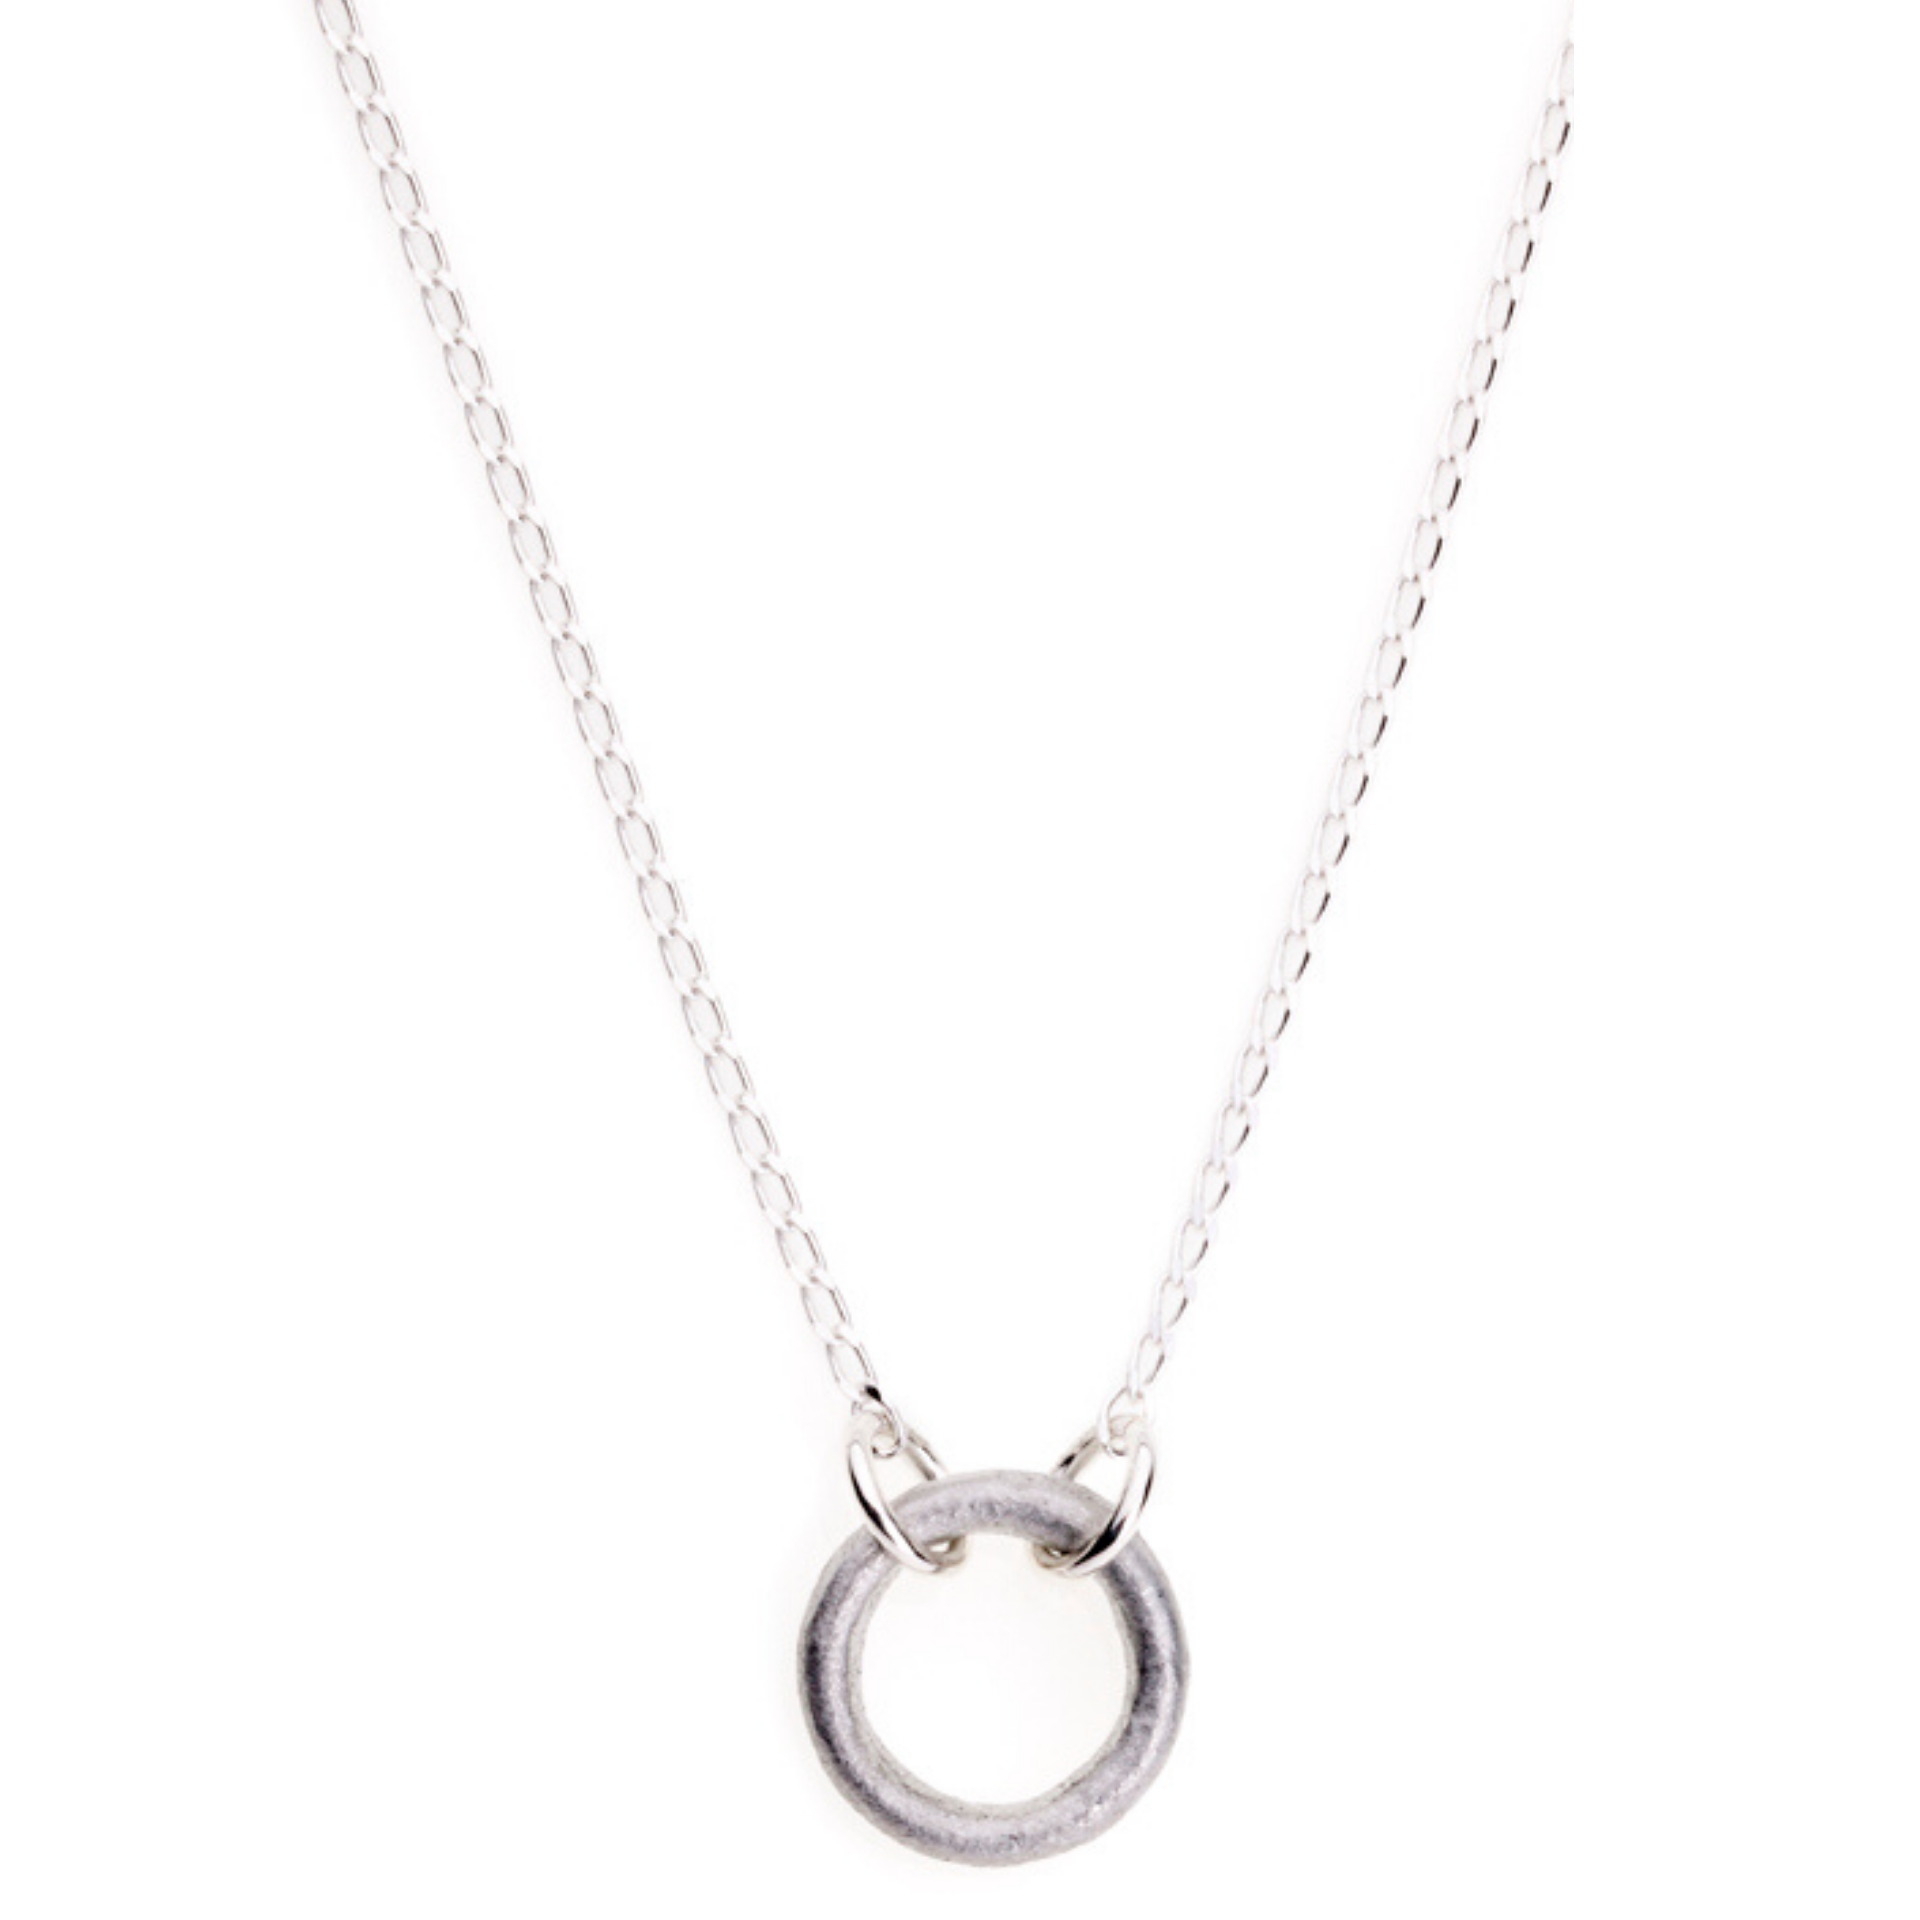 LOVEbomb Circle Shape Pendant on Sterling Silver Chain